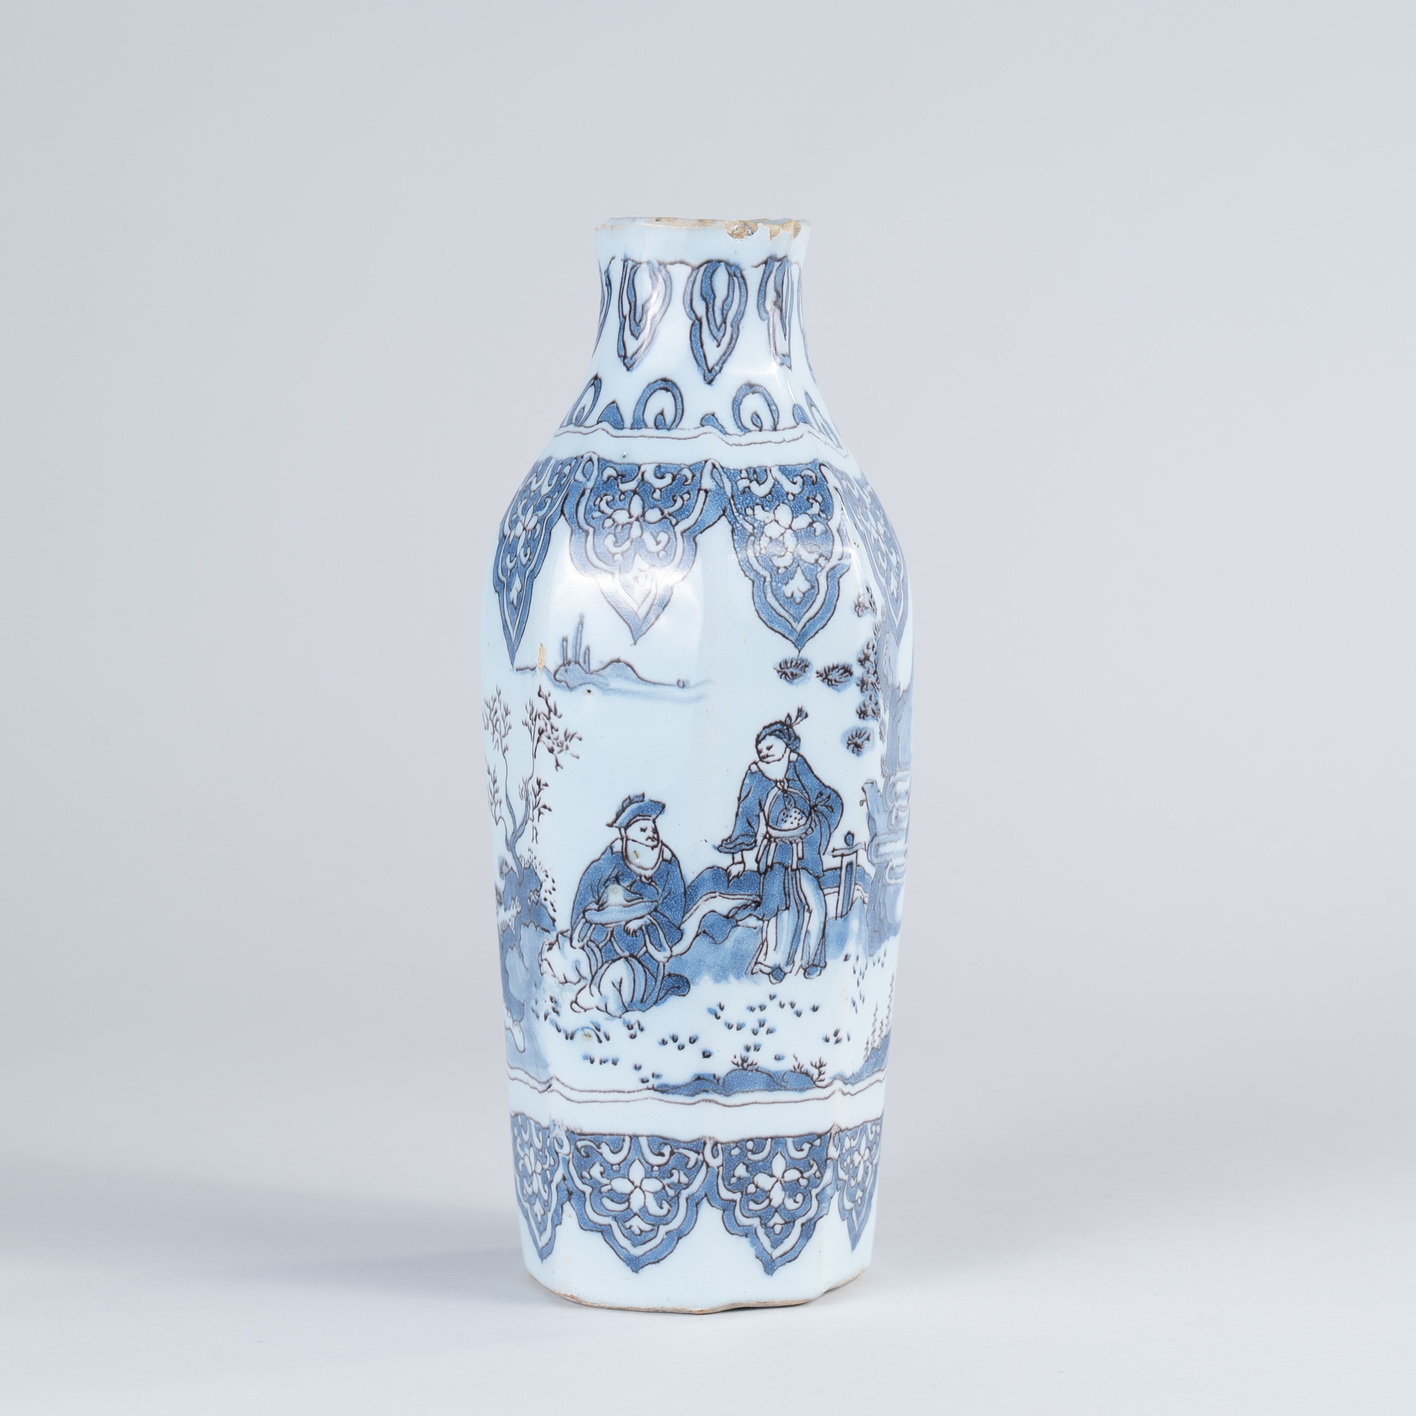 Late 17th Century Dutch Delft Octagonal Vase